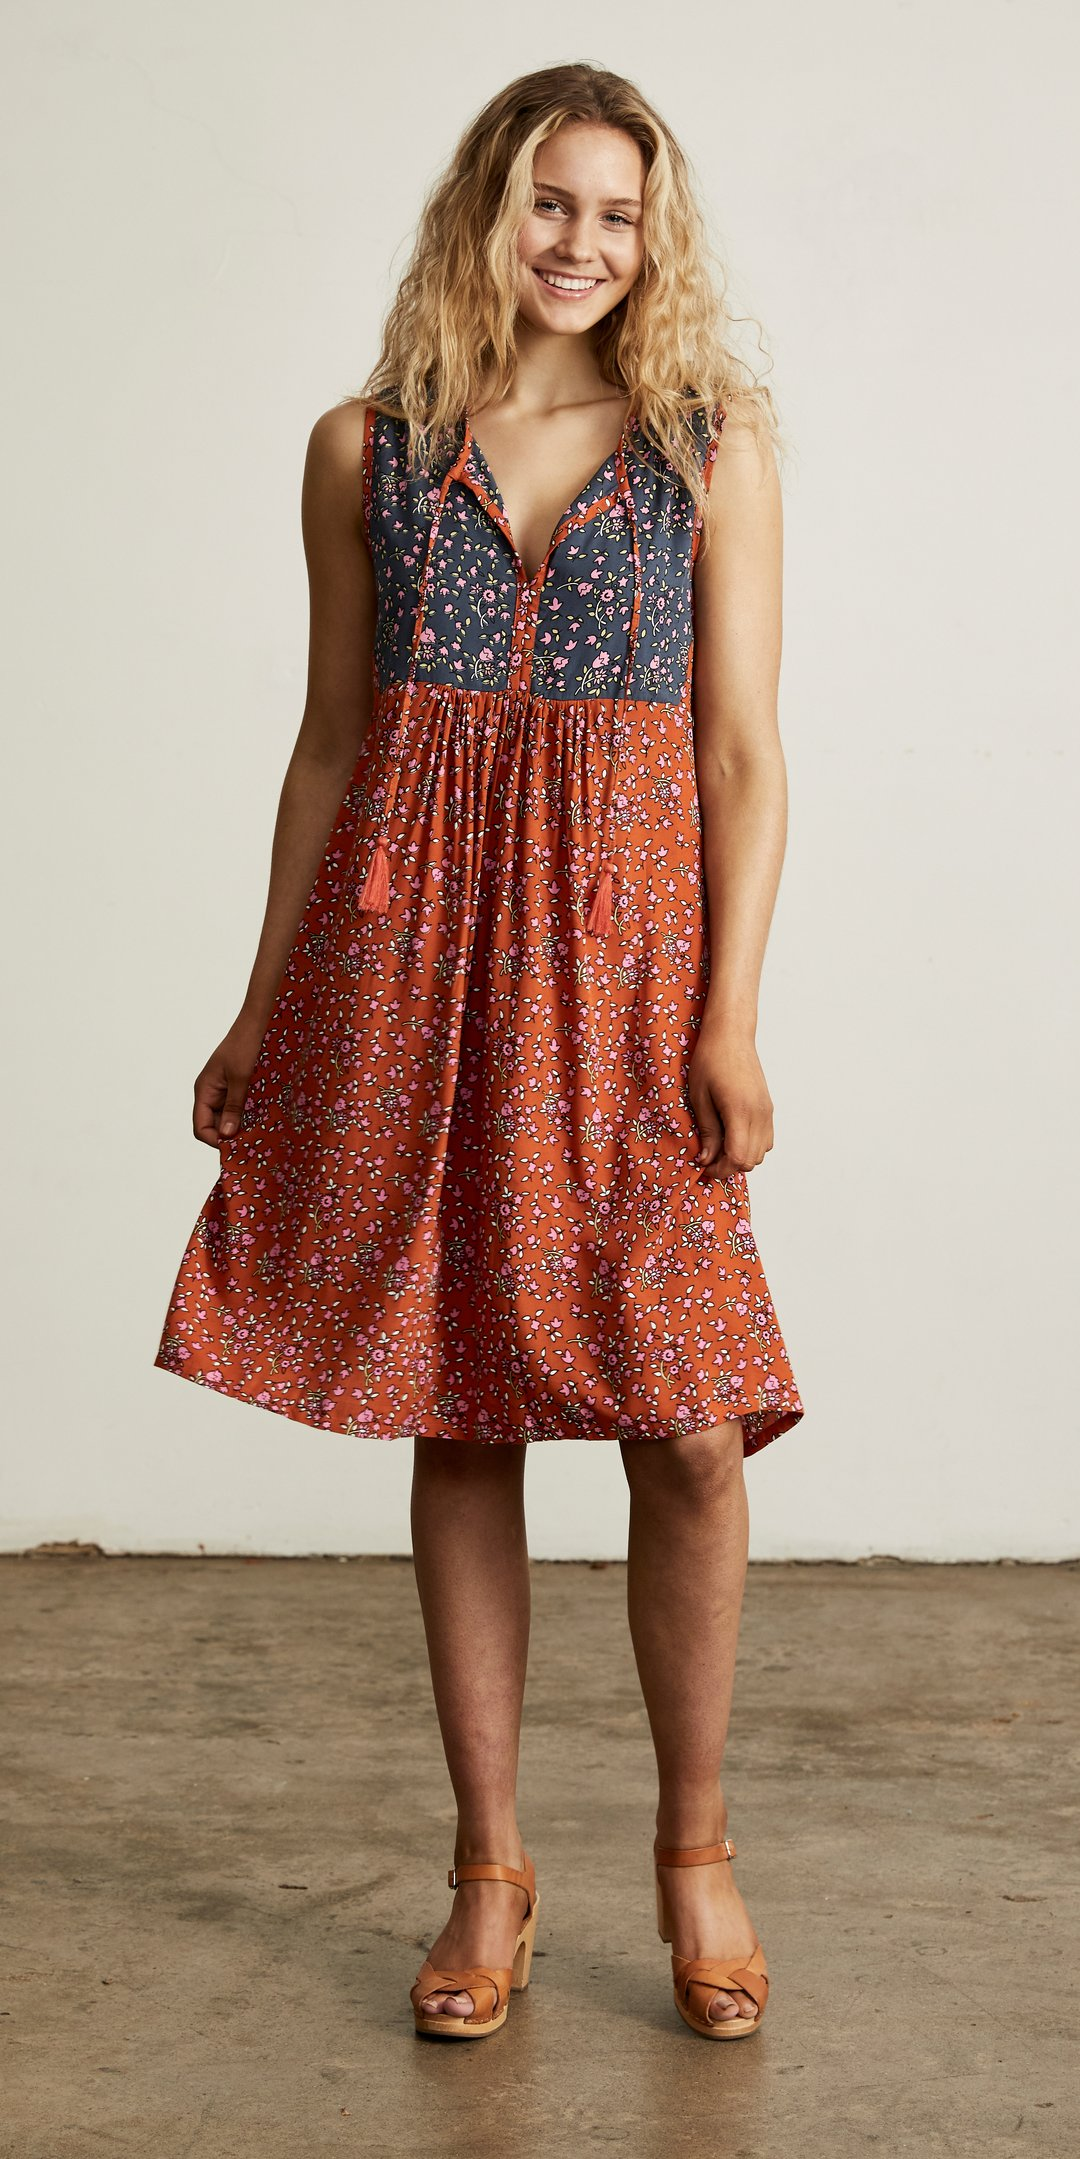 Charlie Boho Dress Ethically Made Bali.jpg